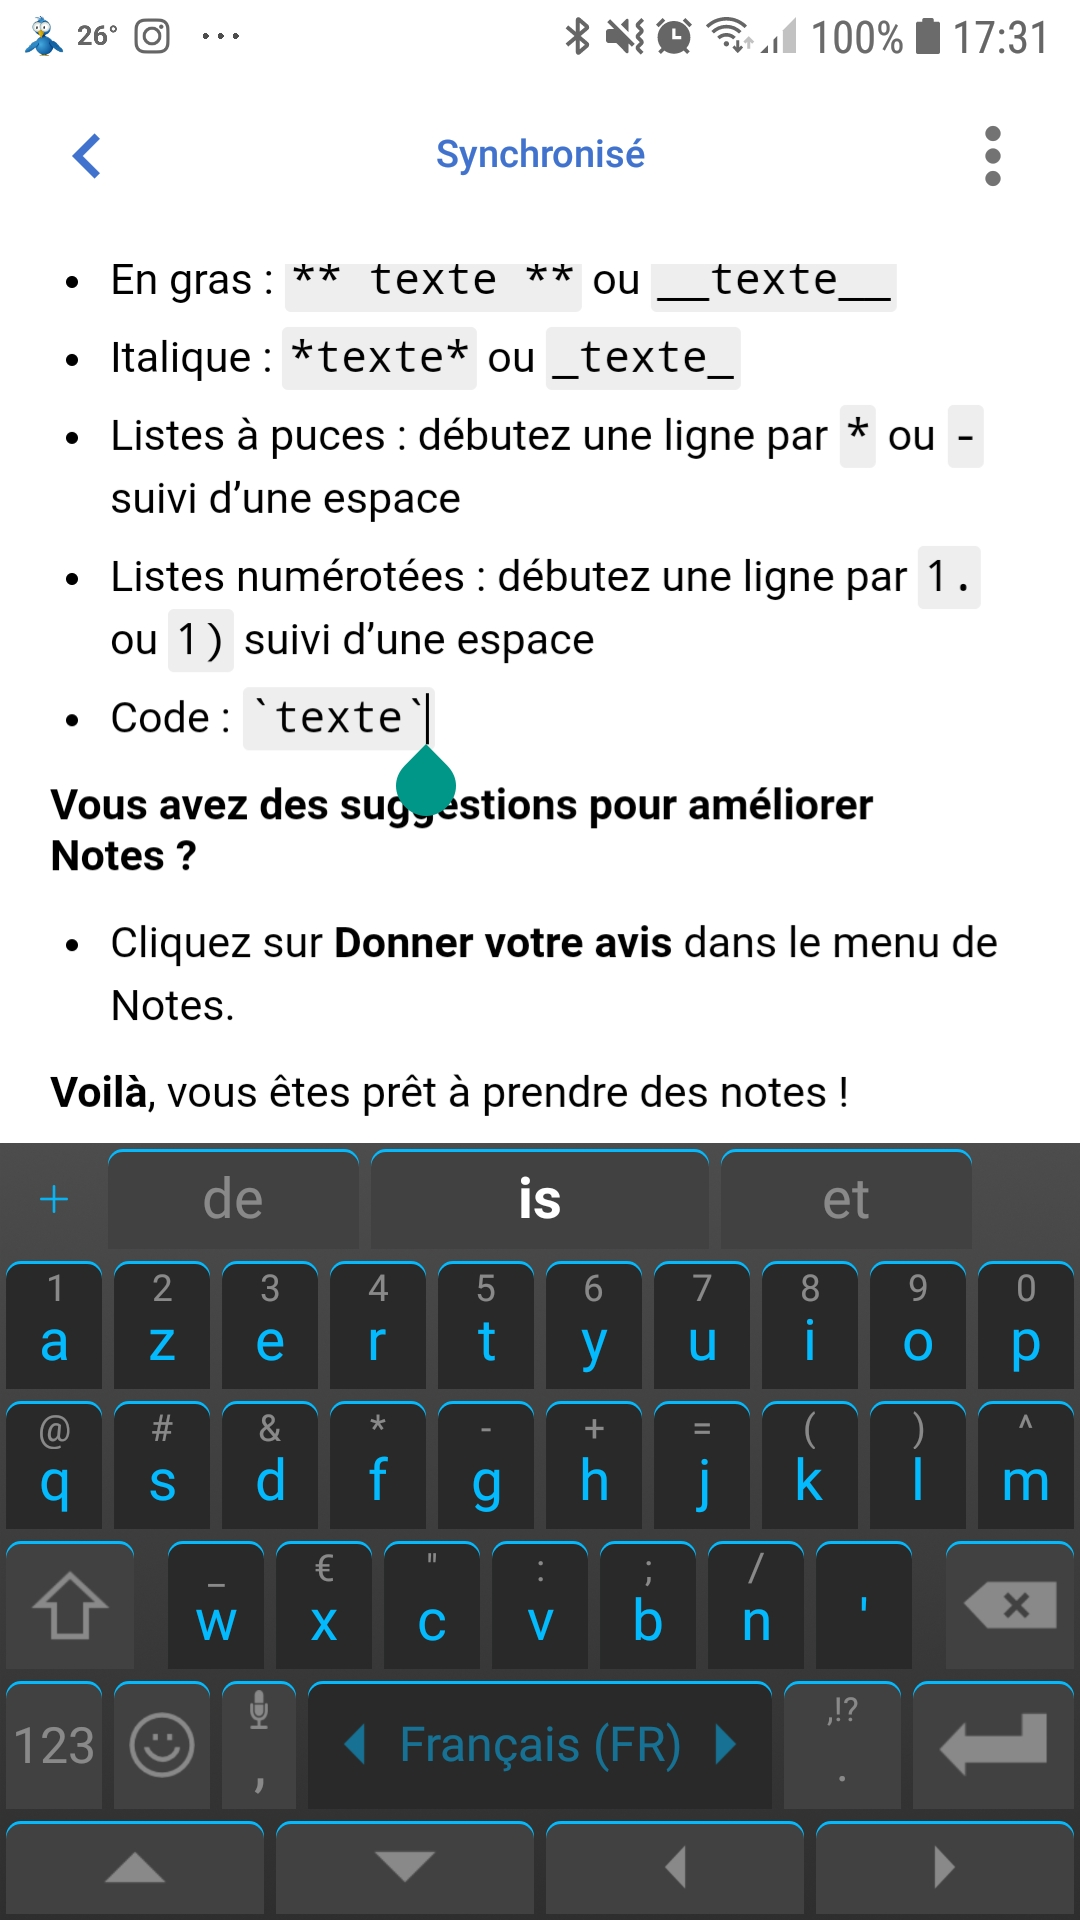 Firefox Test Pilot : note dans Android